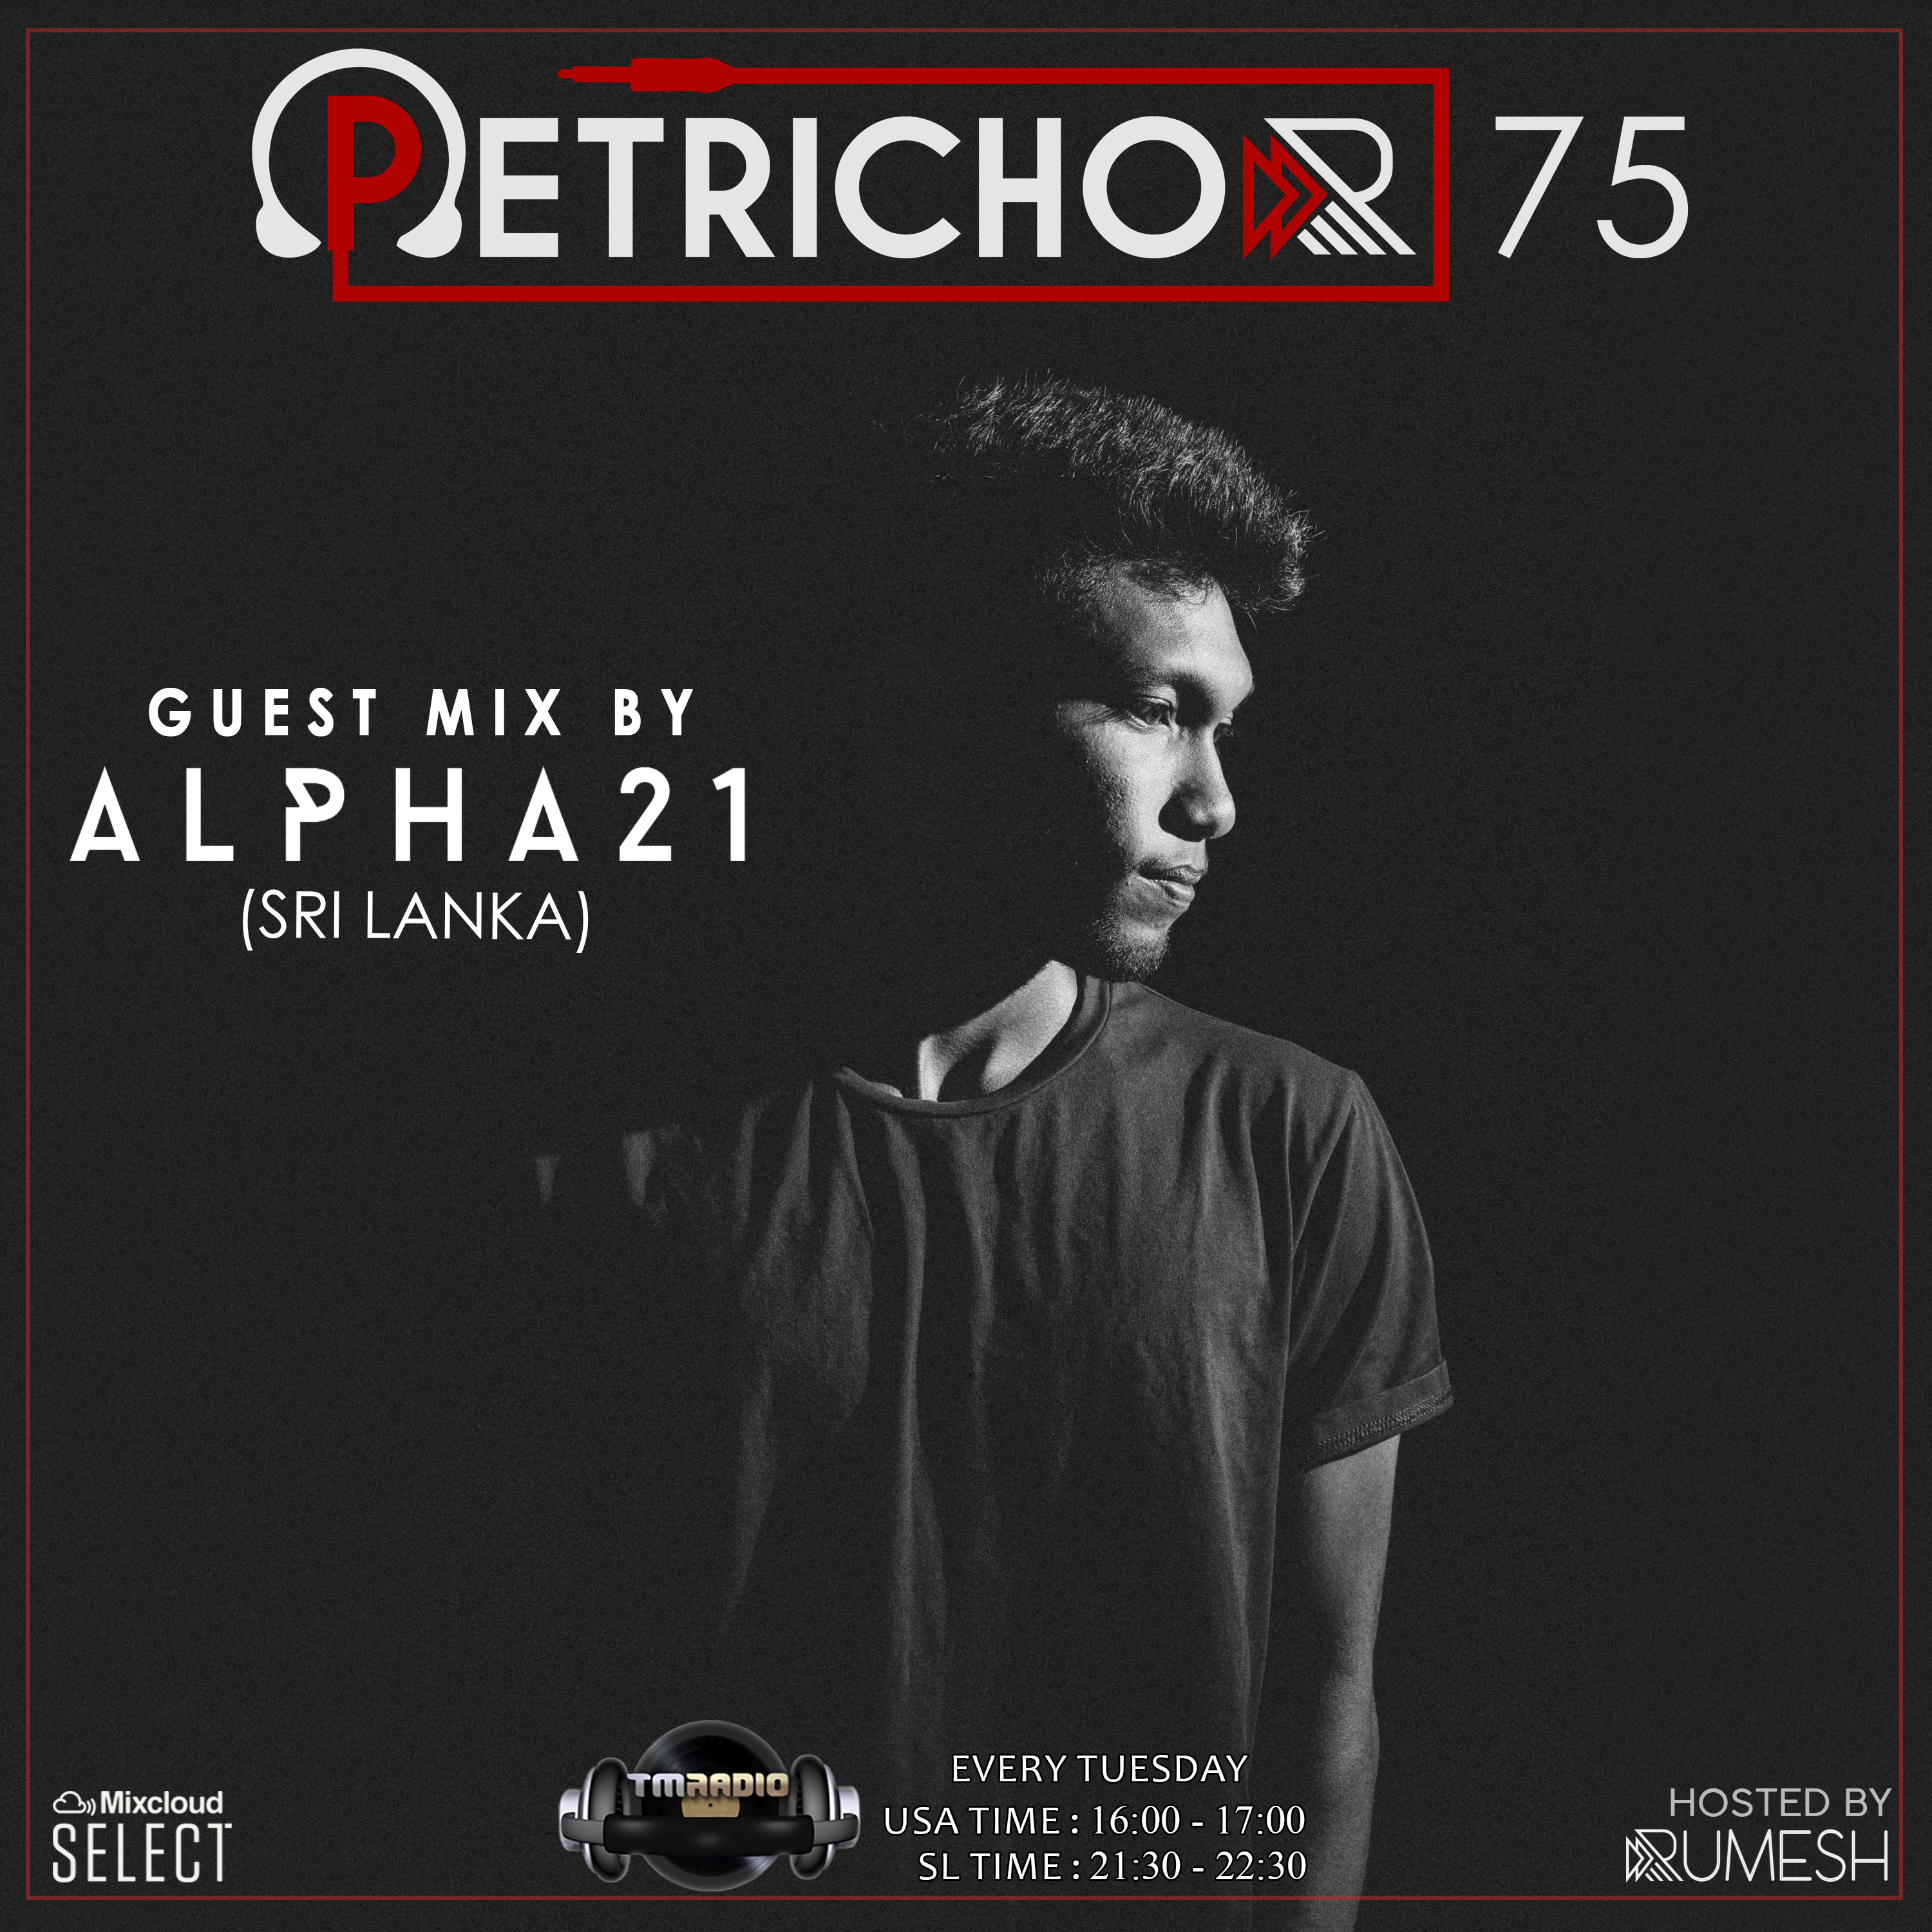 Petrichor :: Petrichor 75 Guest Mix by ALPHA21 -(Sri Lanka) (aired on April 14th, 2020) banner logo